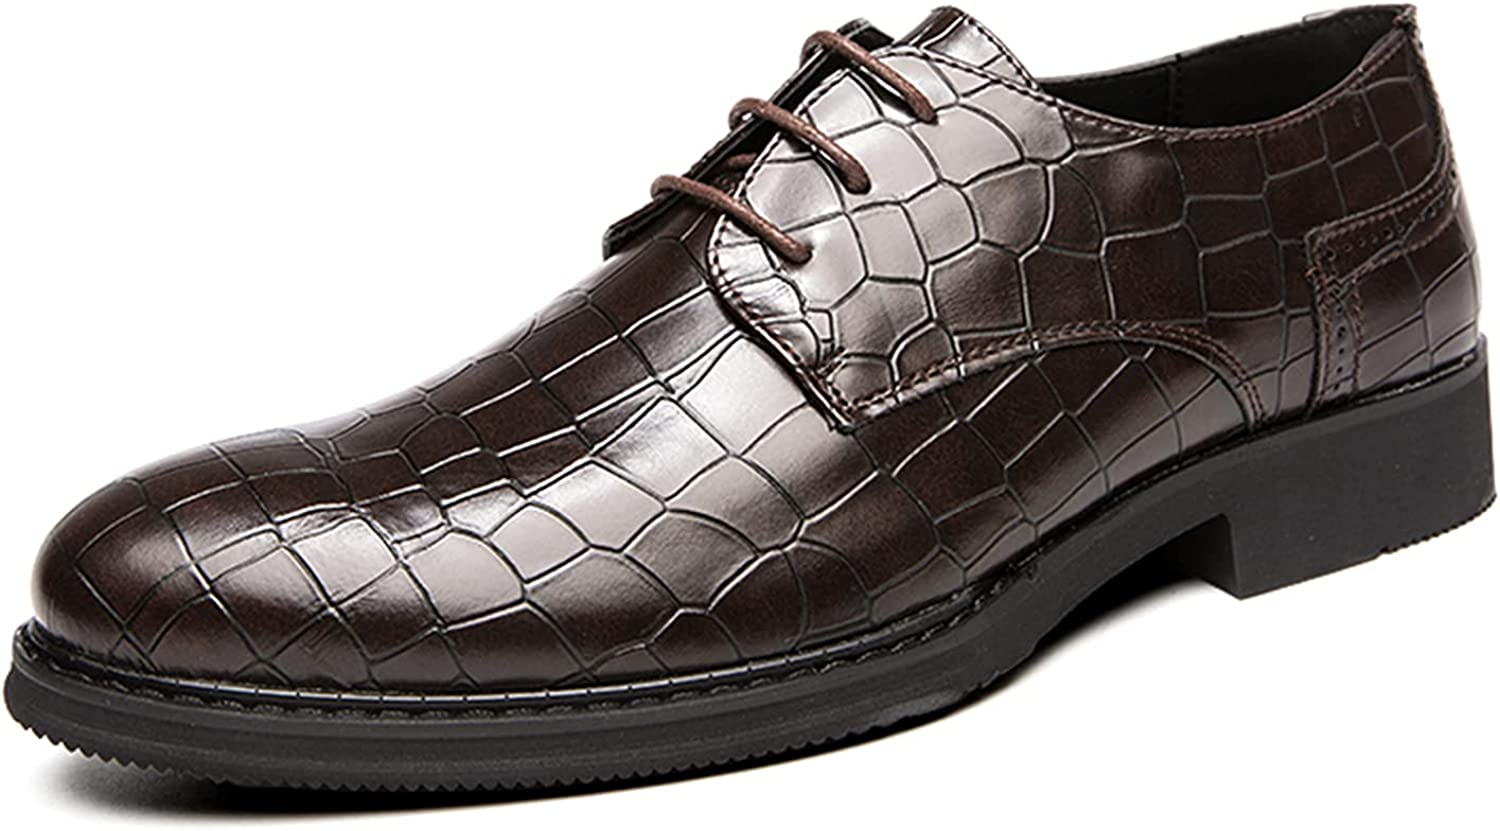 Men's Oxford Crackle Leather Shoes Comfortable Casual Breathable Dress Shoes